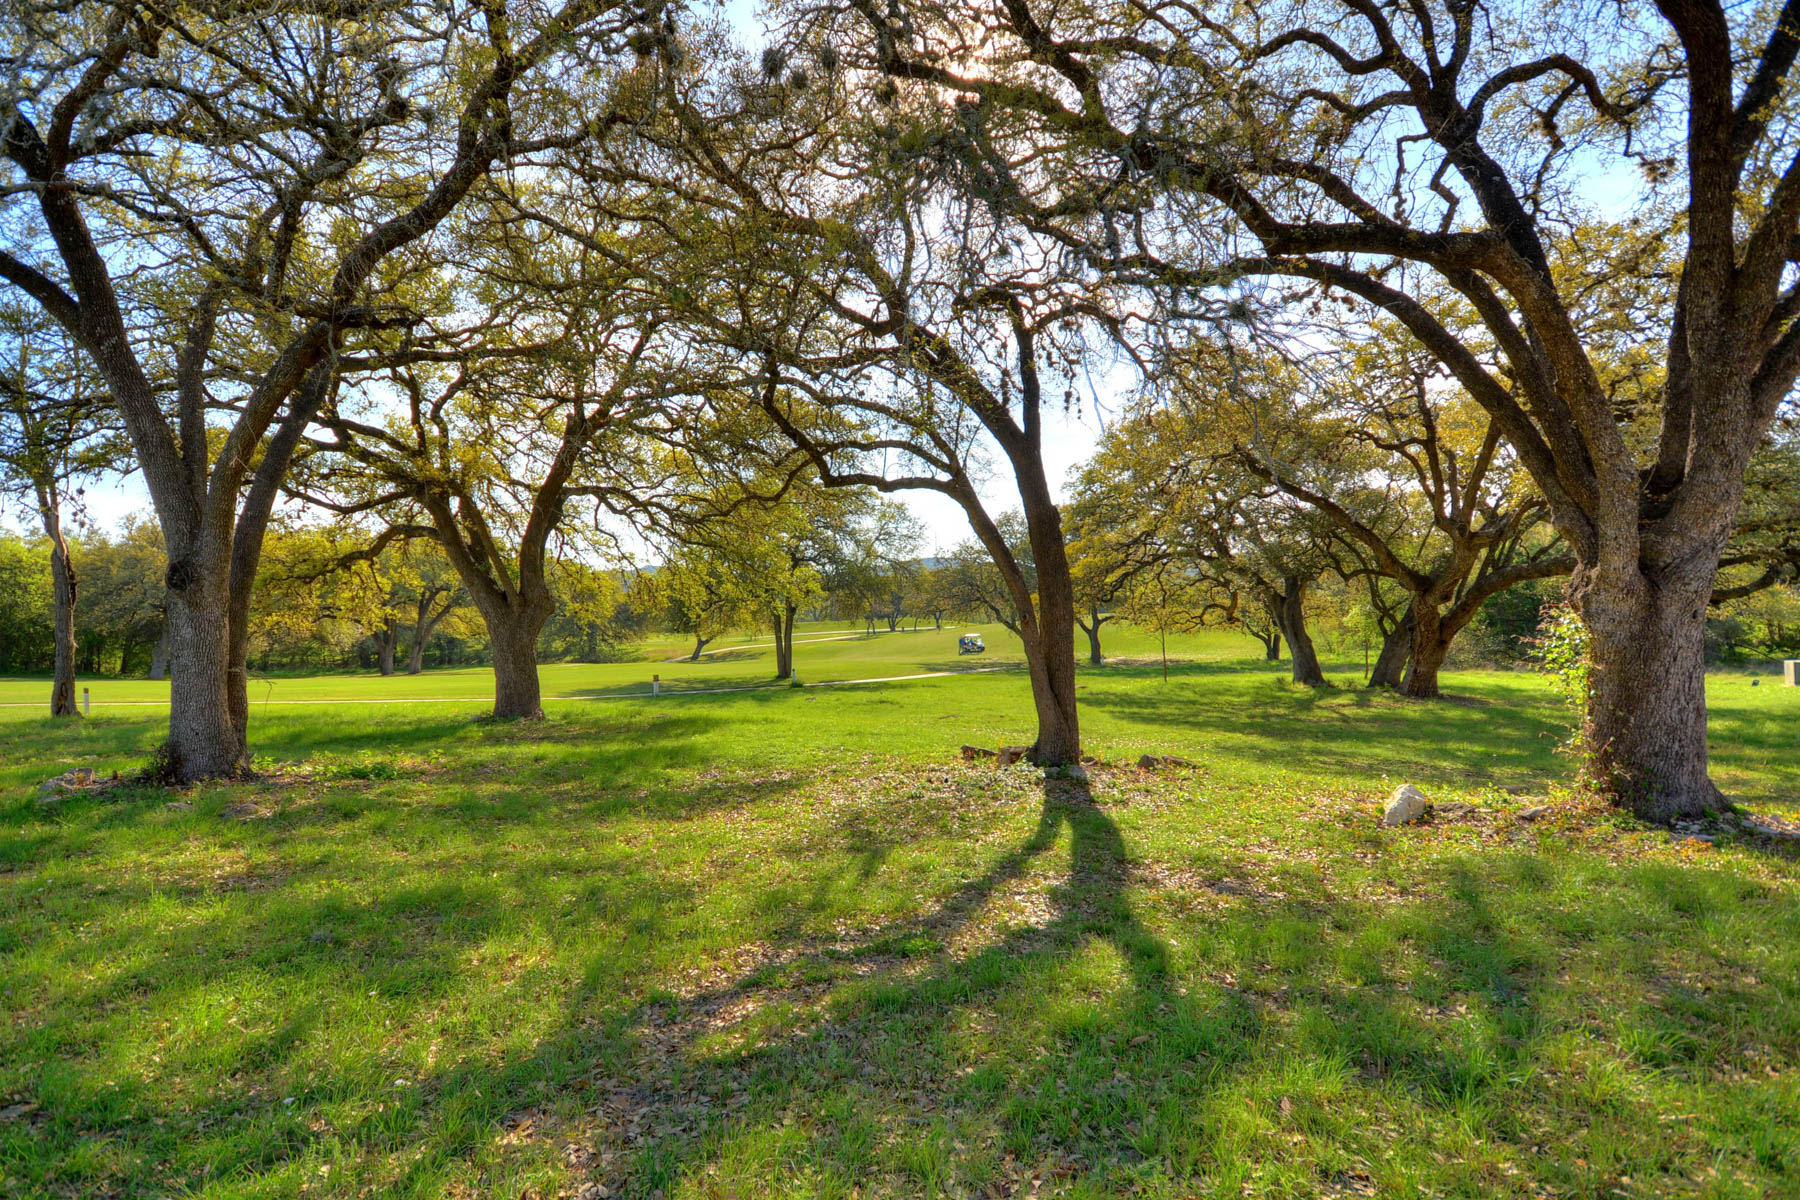 Additional photo for property listing at Exciting Opportunity in The Dominion 18 Chaumont San Antonio, Texas 78257 Estados Unidos